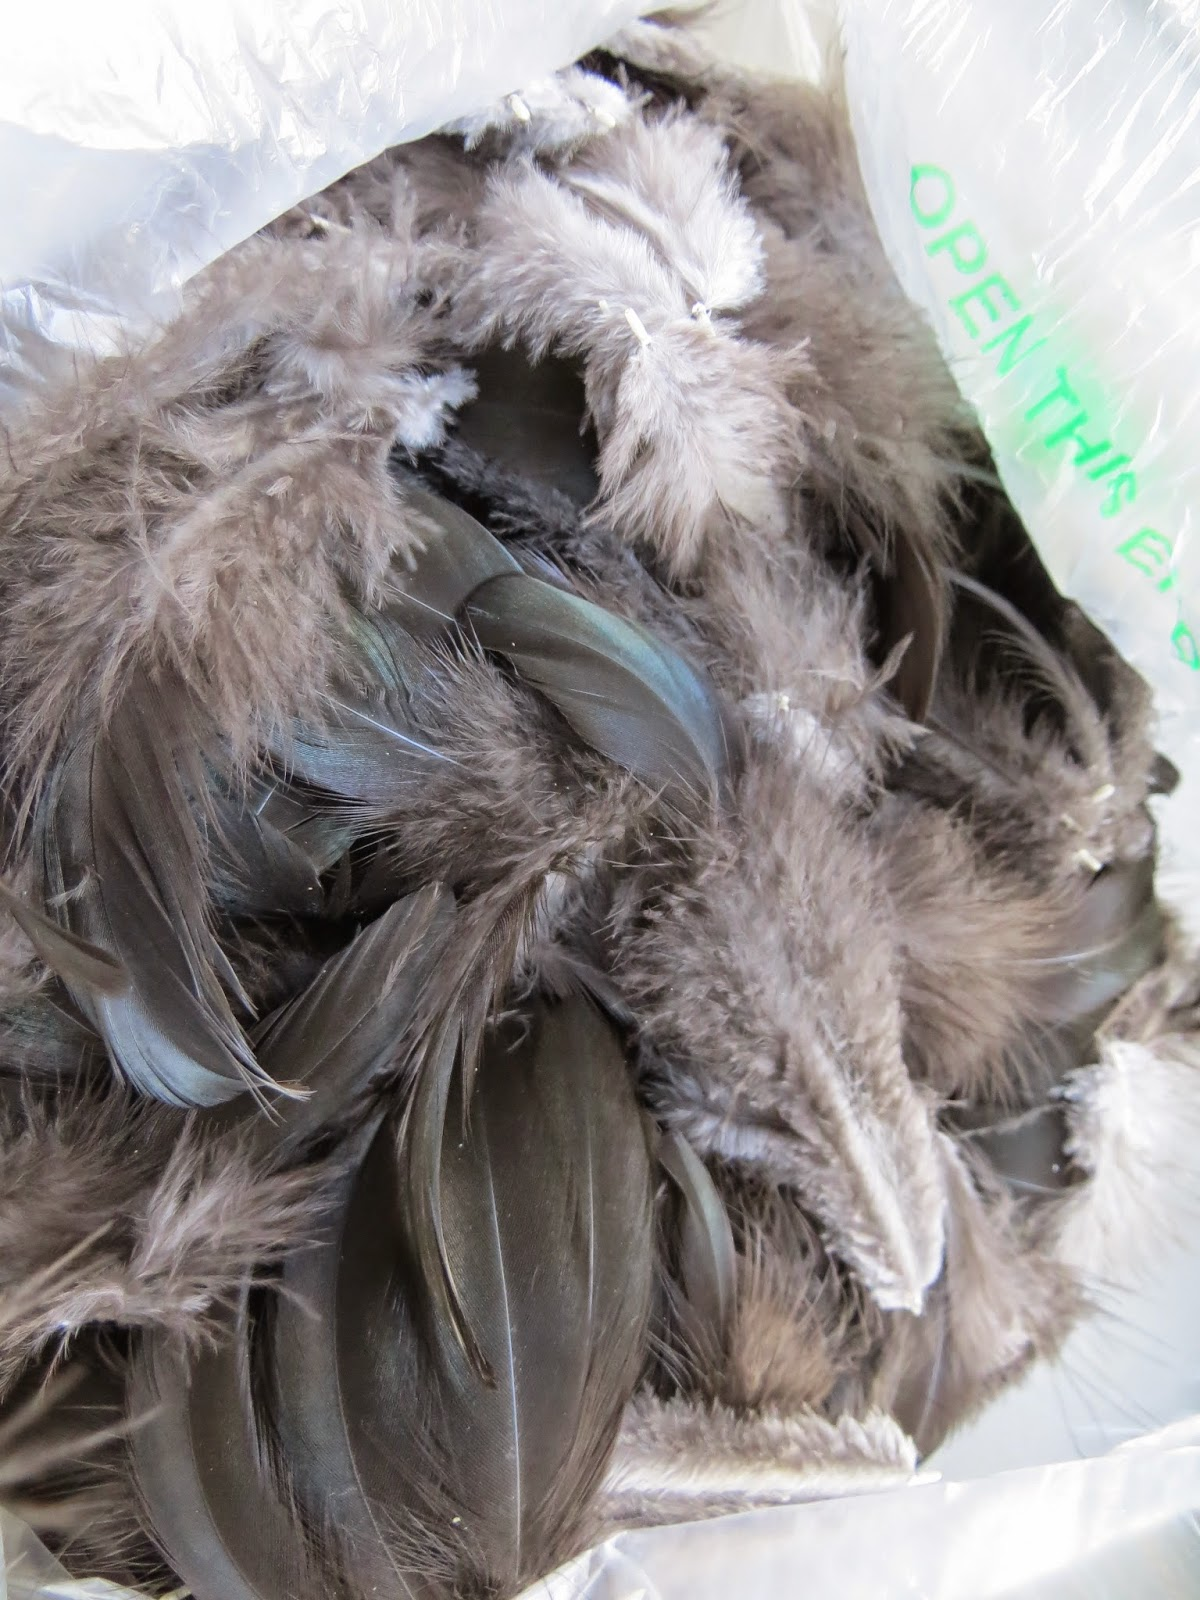 Plucked feathers of black orpington hen for weaving a cloak